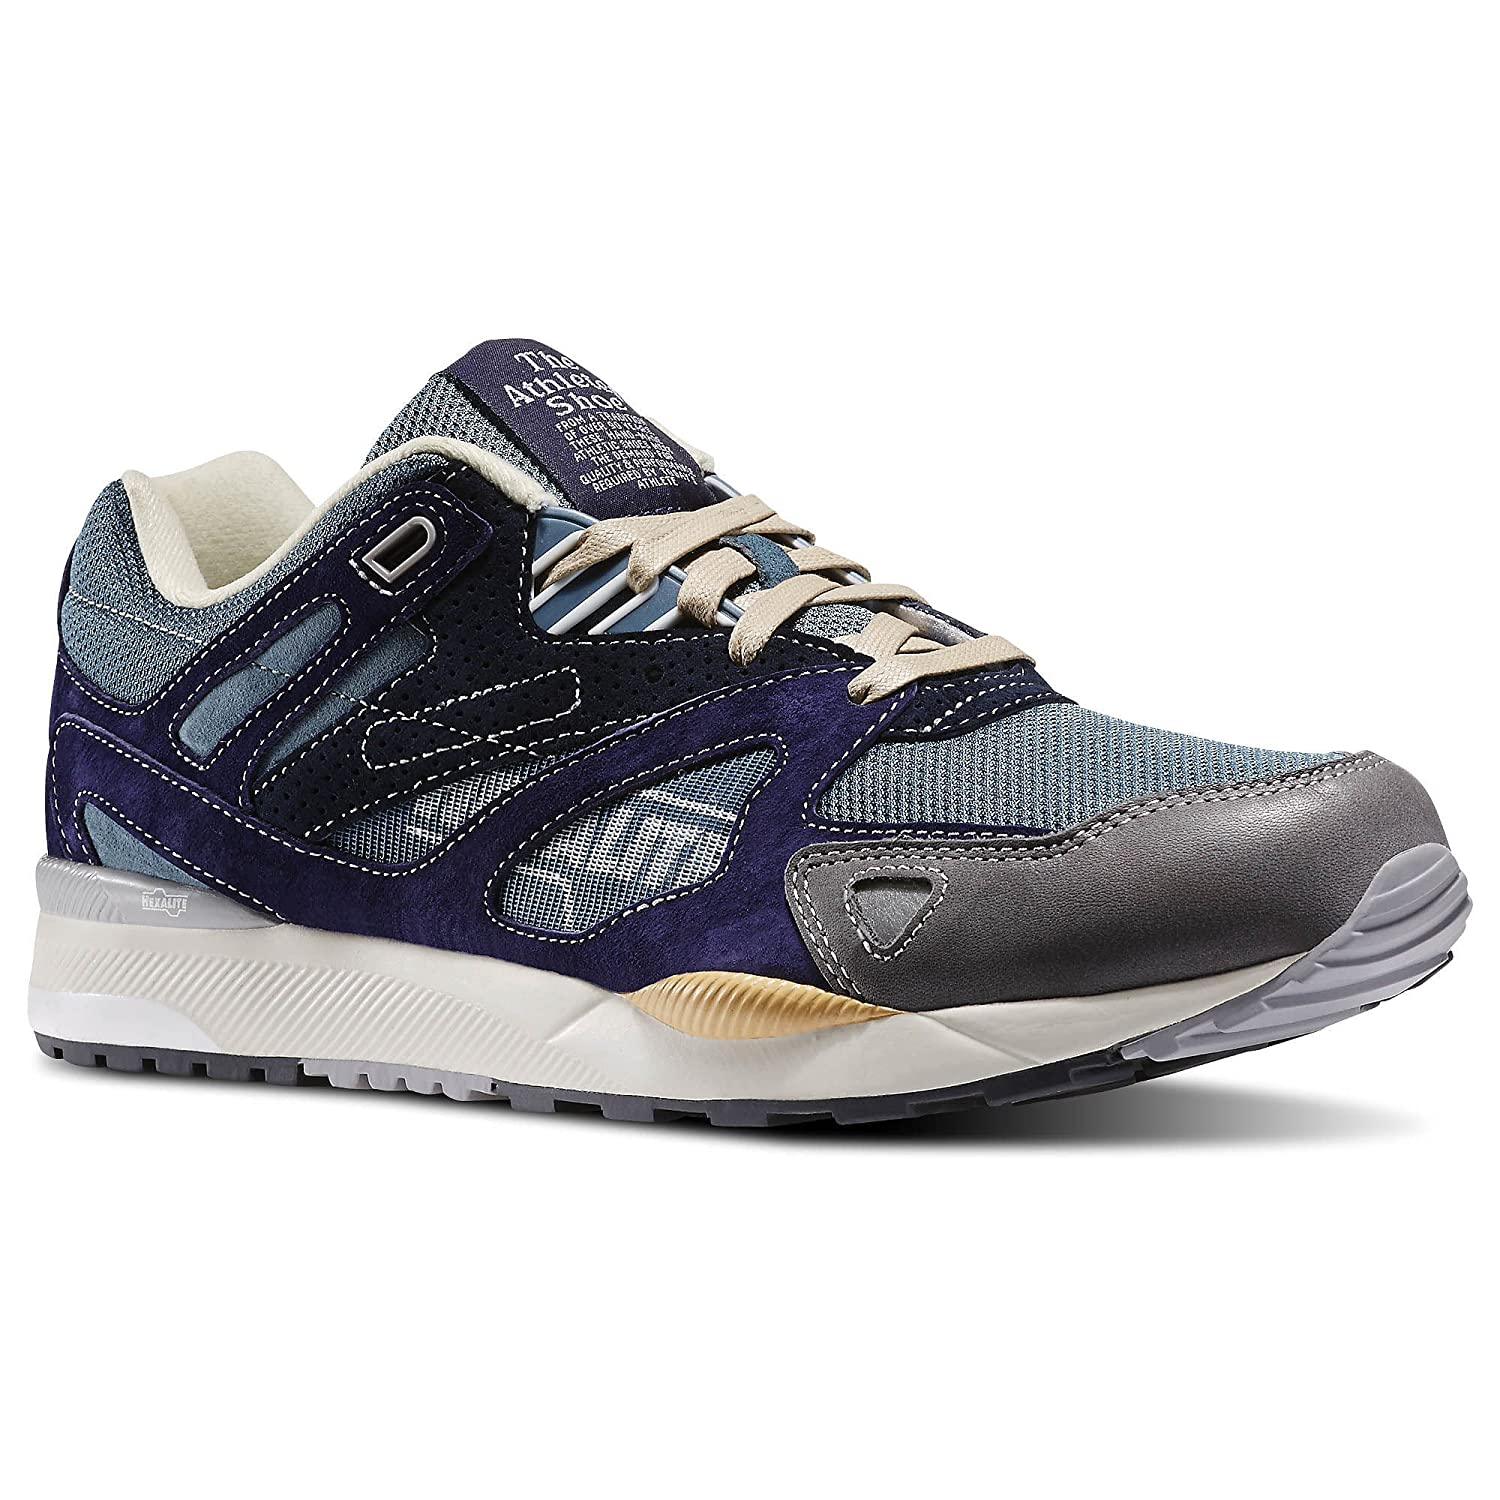 6ff4b88d2fb Reebok GS Ventilator II Mens Running Shoe 15 Stormy Blue-Wicked Blue-Cyclone  Grey  Amazon.ca  Shoes   Handbags